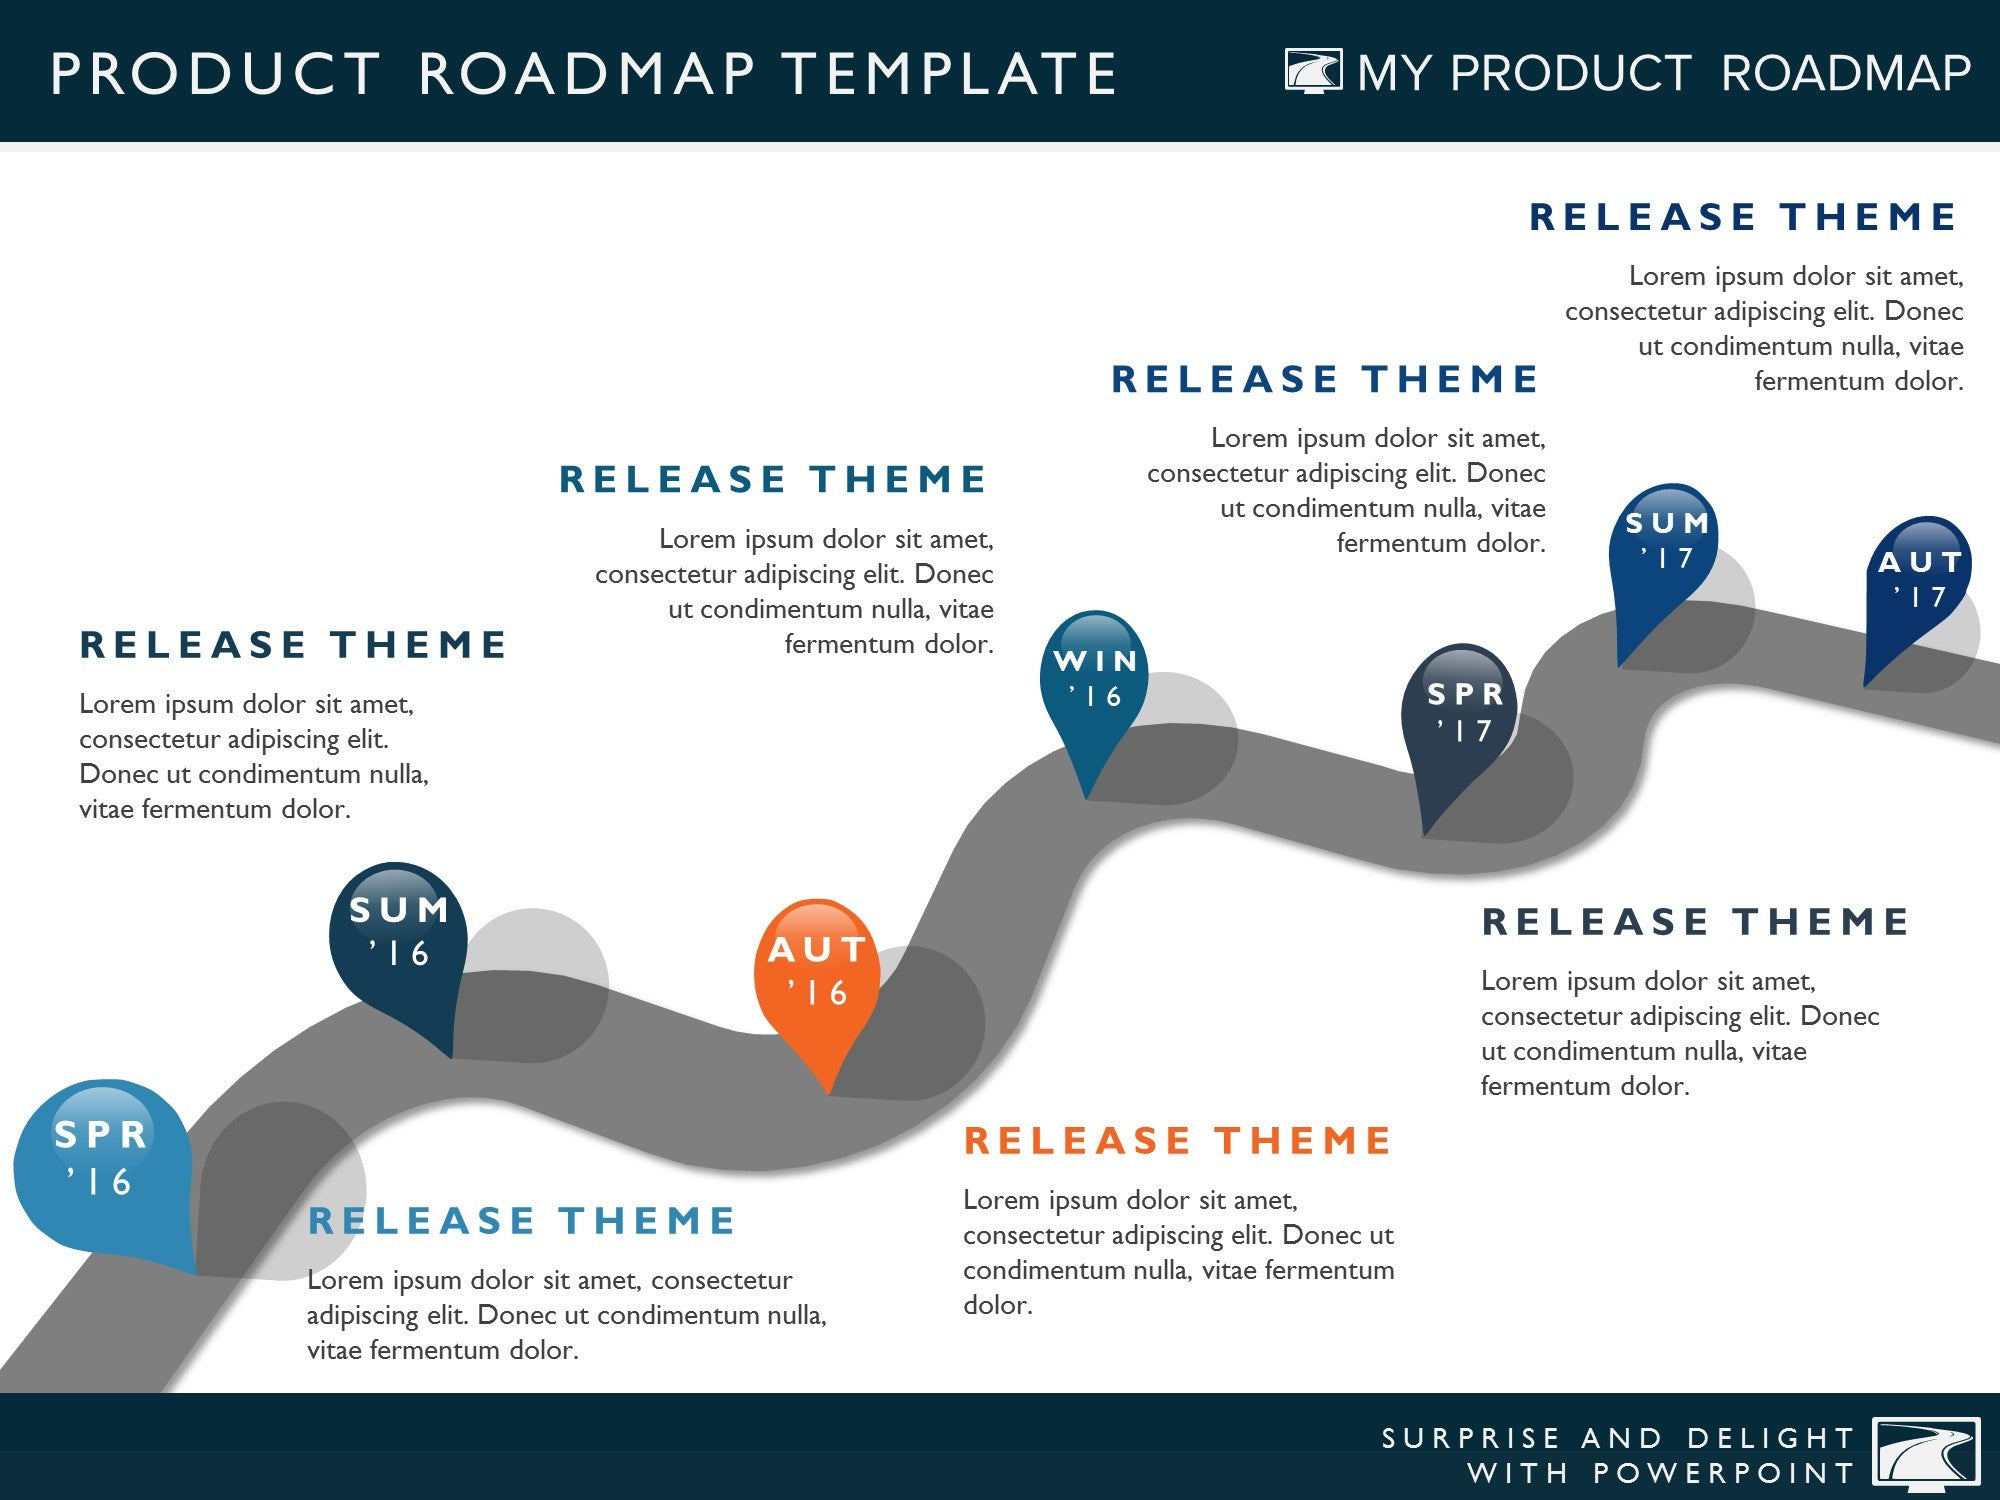 Seven phase it timeline roadmapping powerpoint template my product strategy development cycle planning timeline templates stages software management tools ppt manager marketing roadmap template toneelgroepblik Images